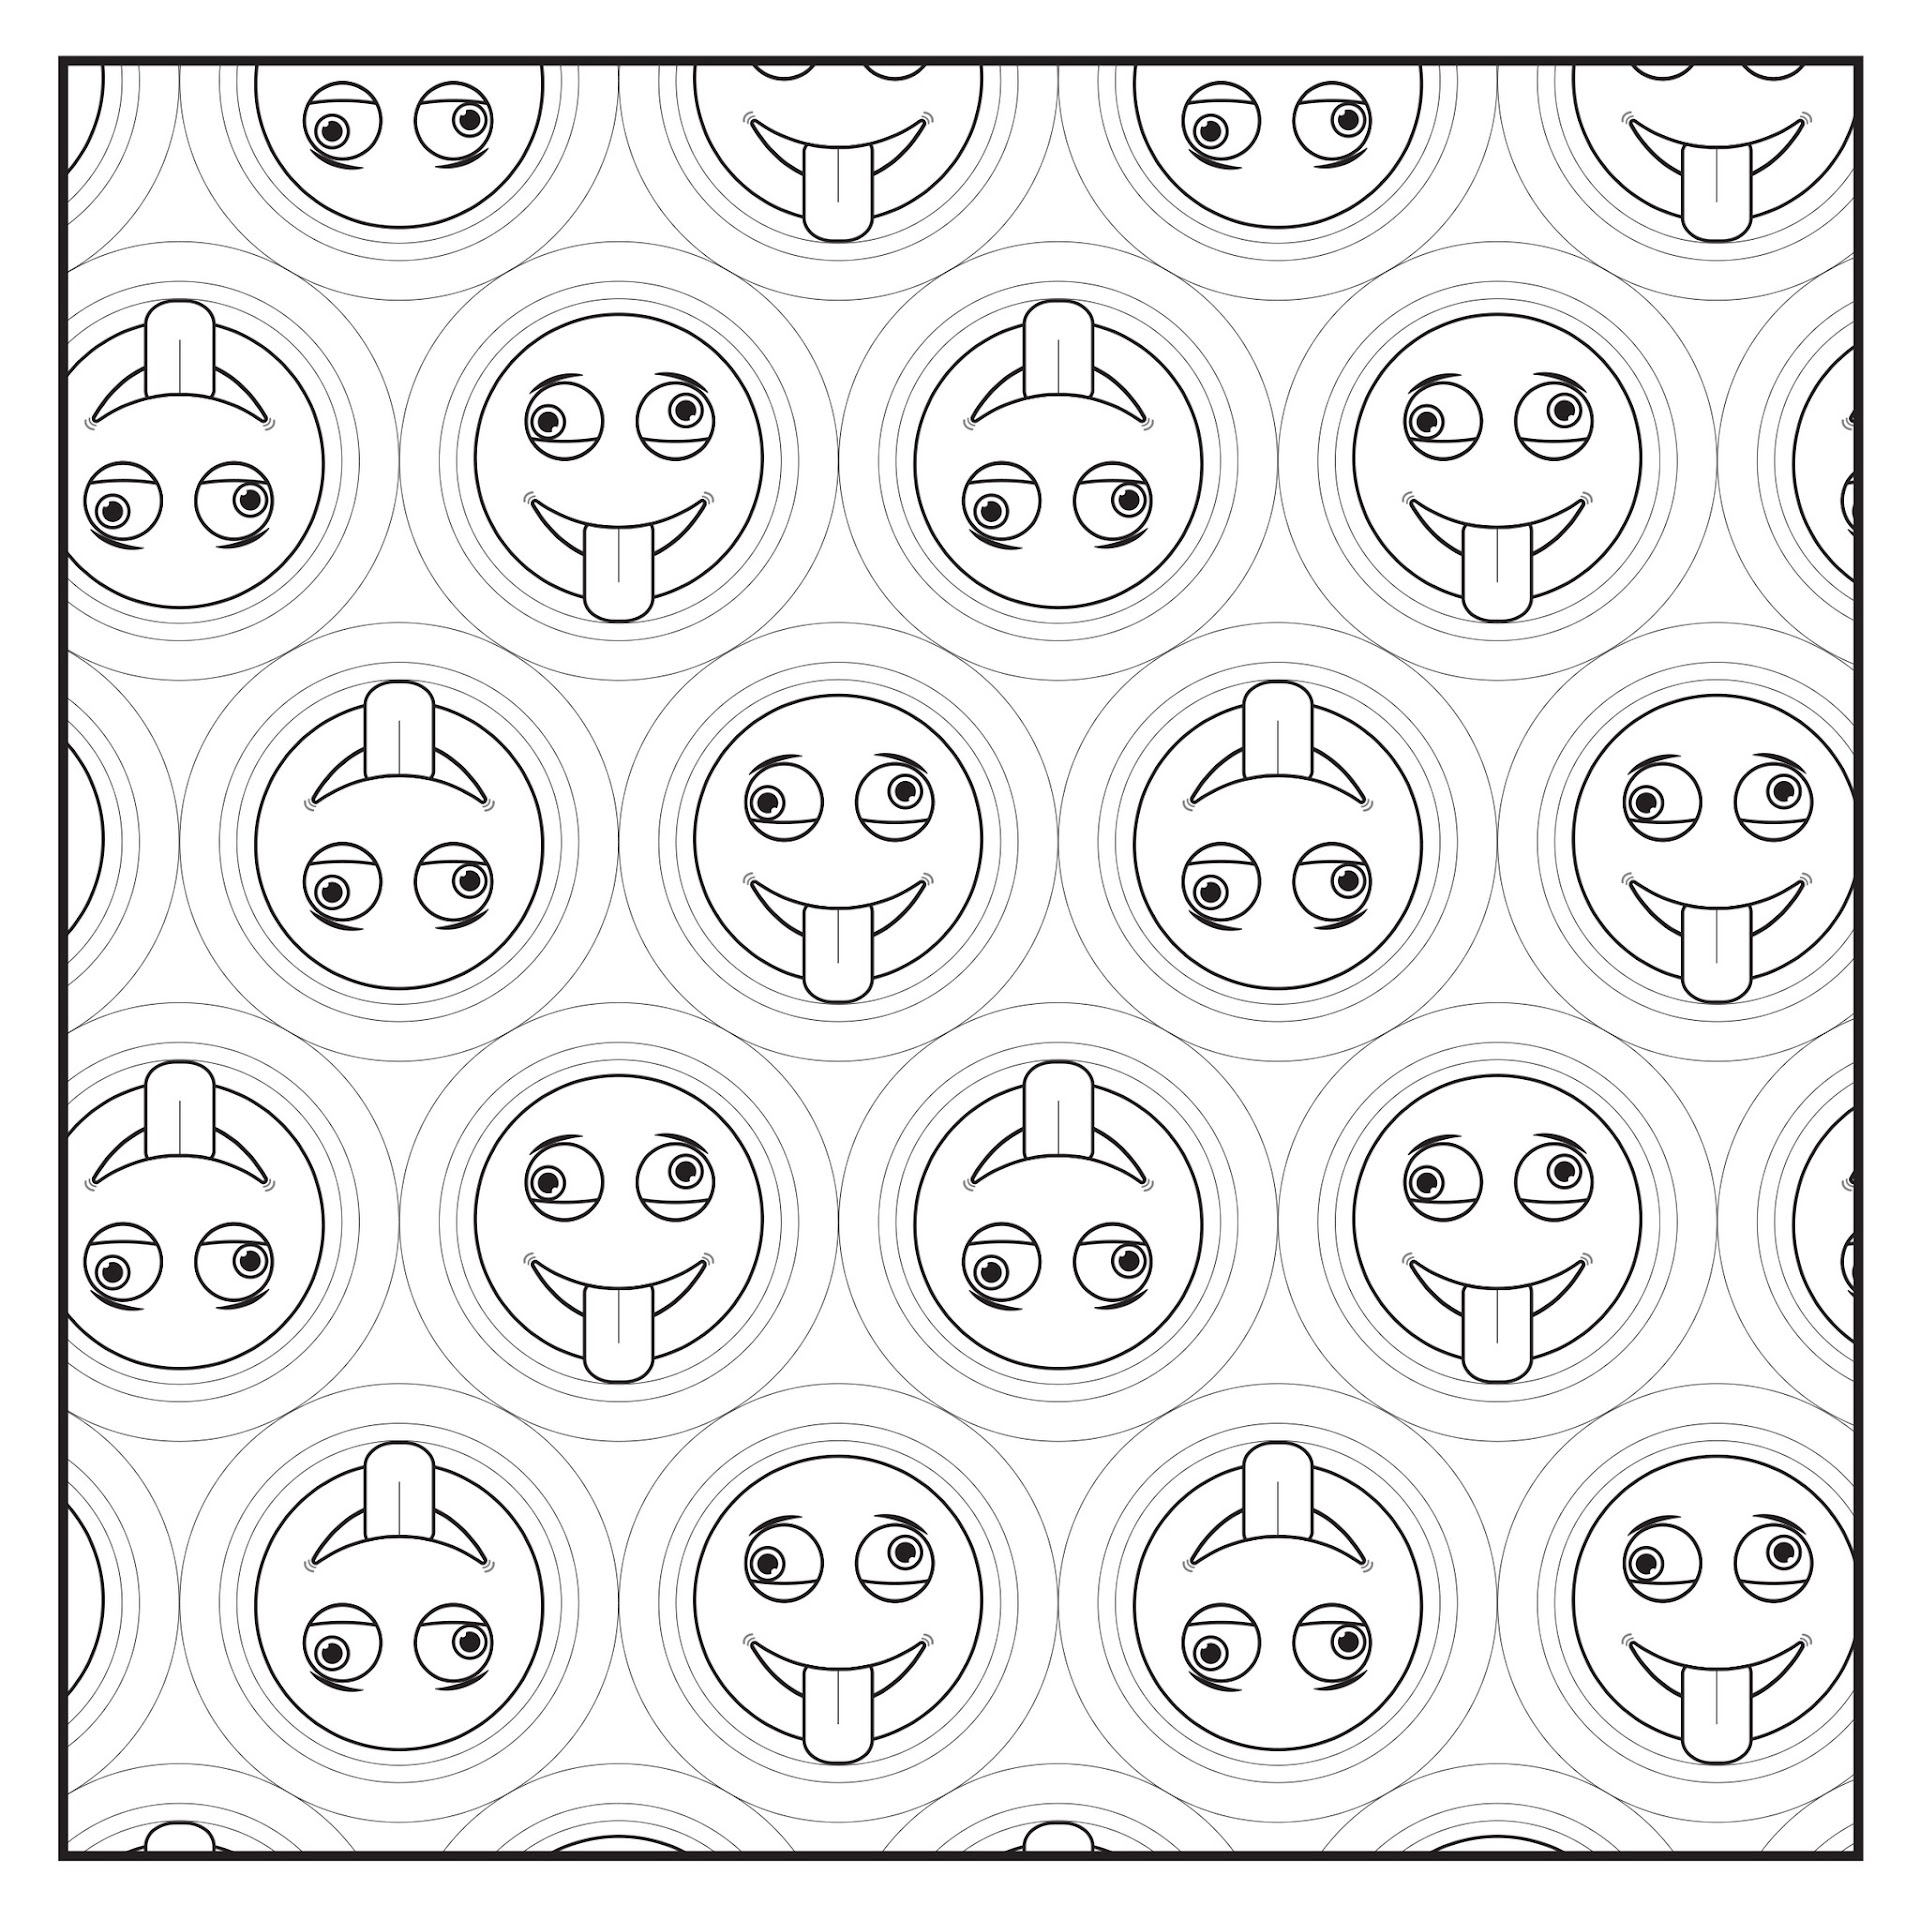 Best All Emojis Coloring Pages Drawing